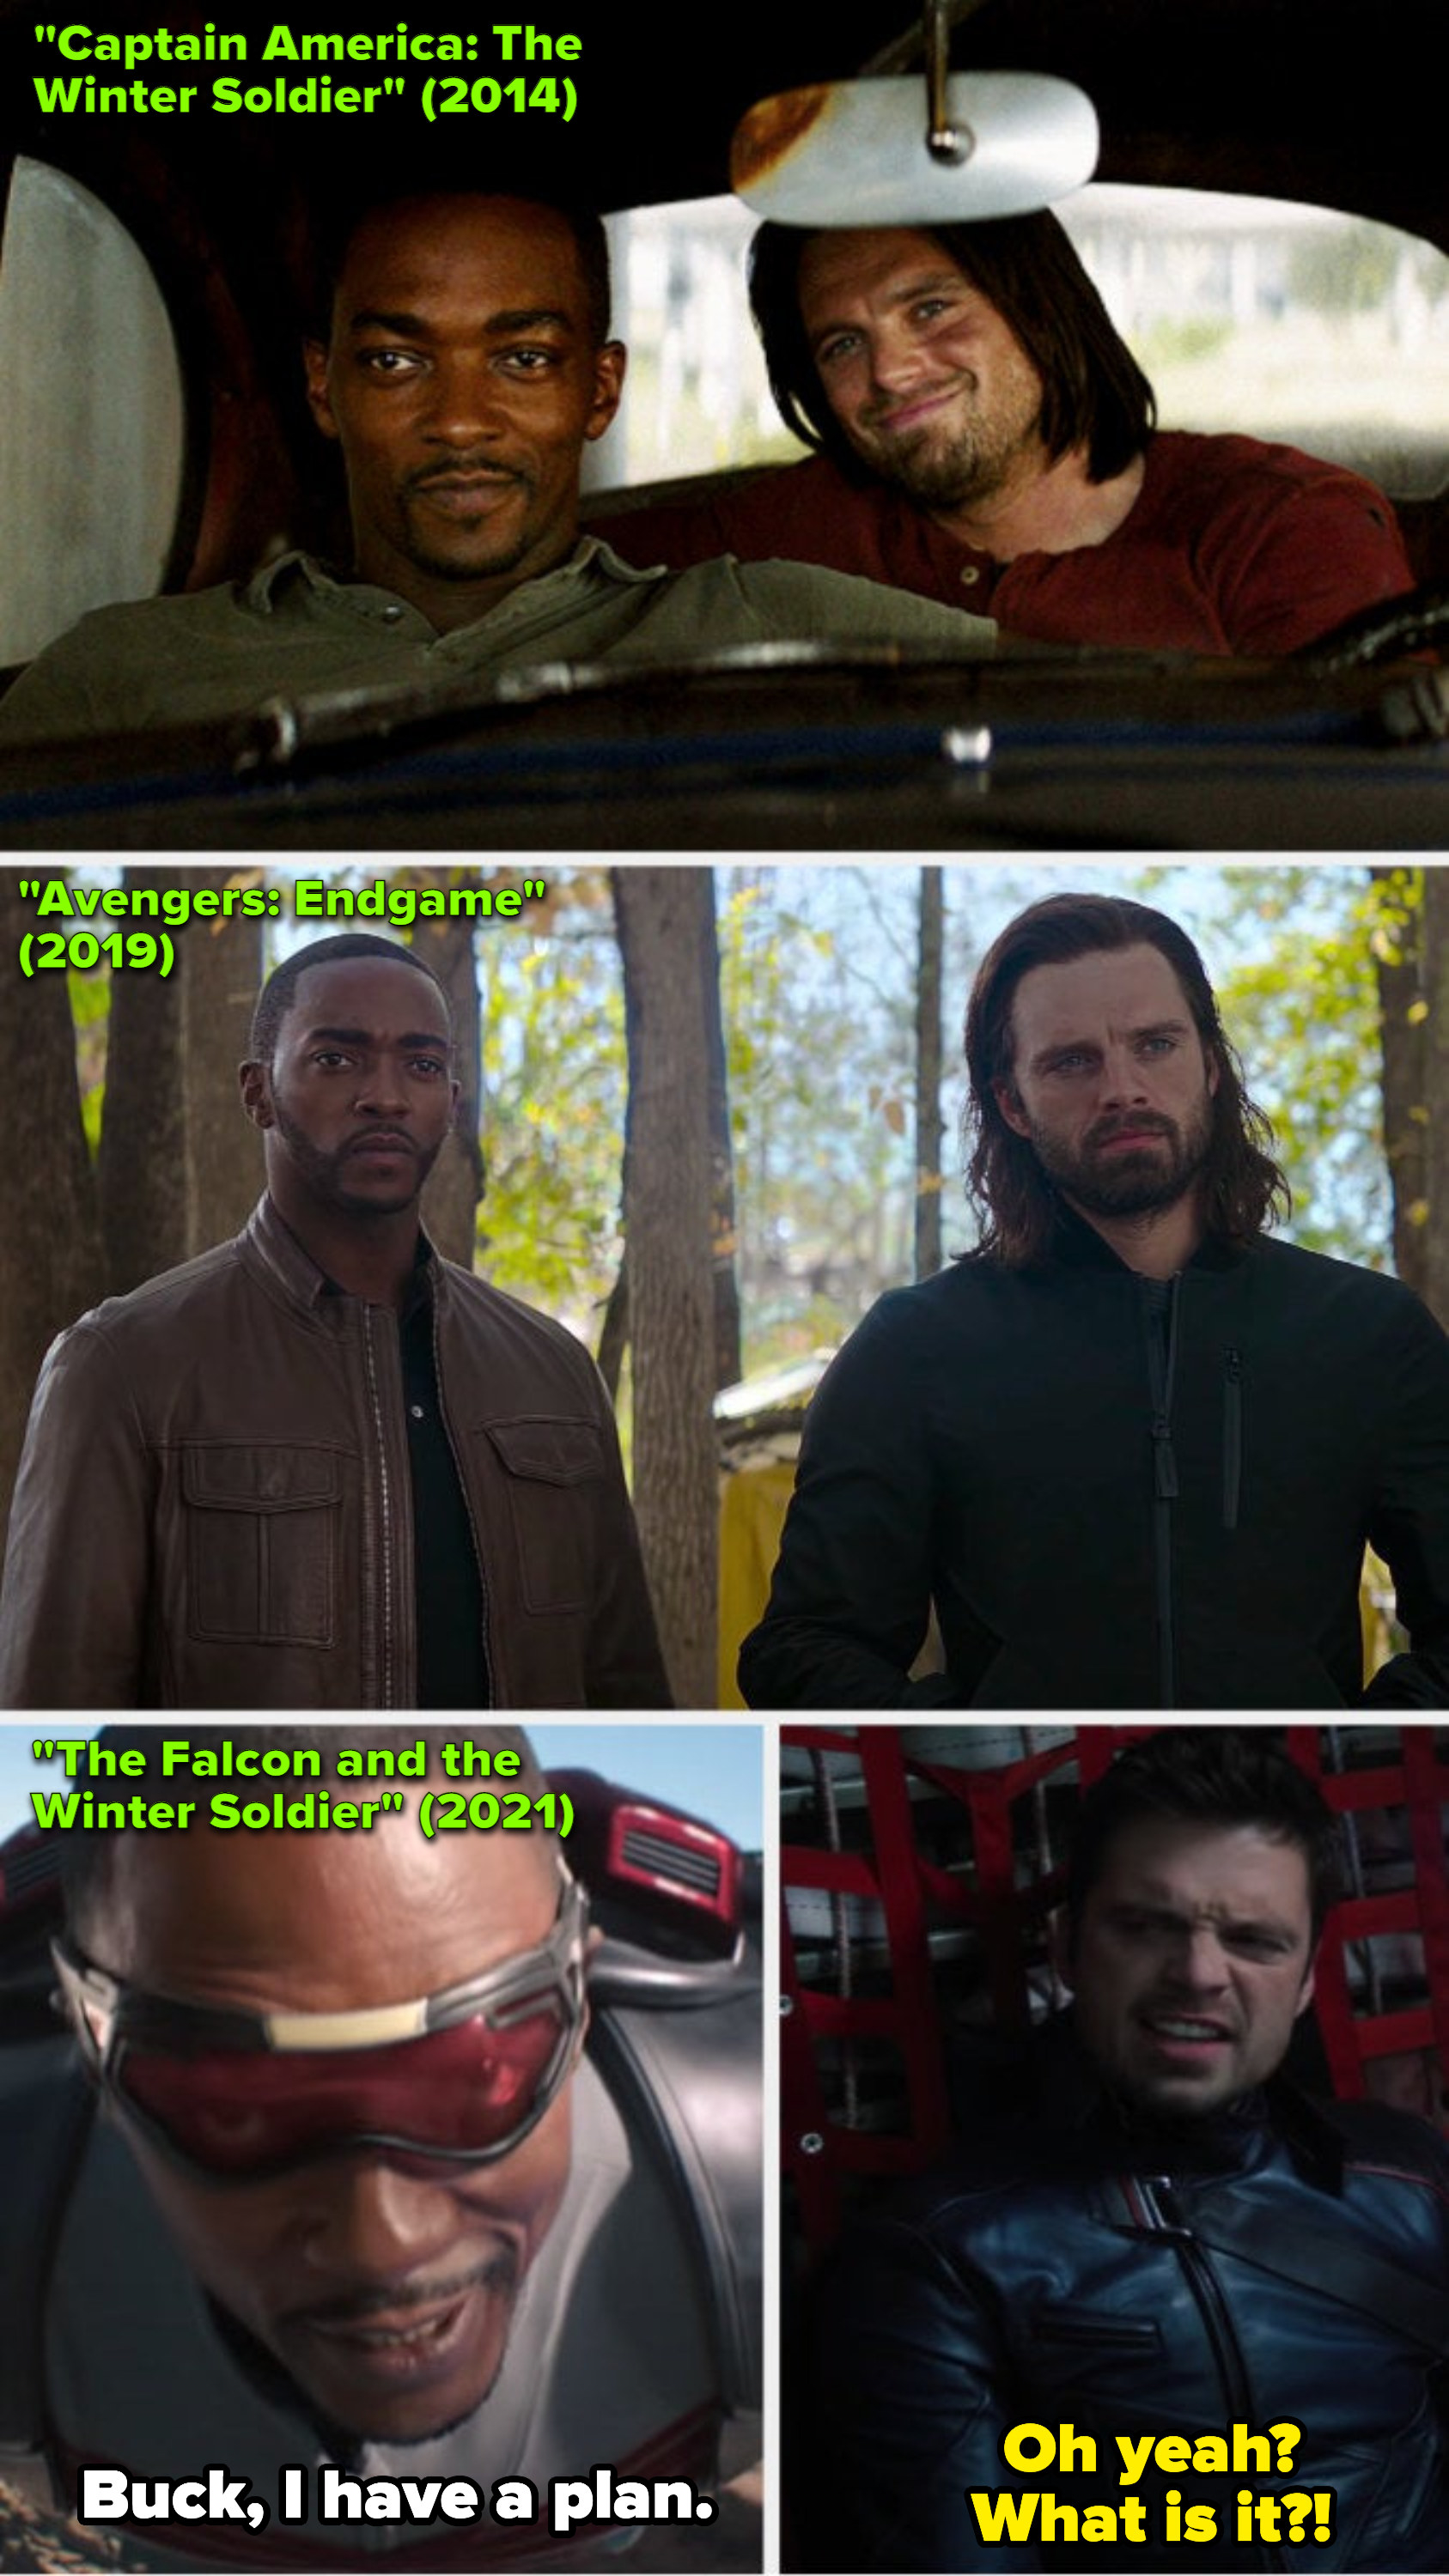 """Stan and Mackie in """"The Winter Solider"""" (2014); Stan and Mackie in """"Avengers: Endgame"""" (2019); Stan and Mackie in """"The Falcon and the Winter Solider"""" (2021)"""